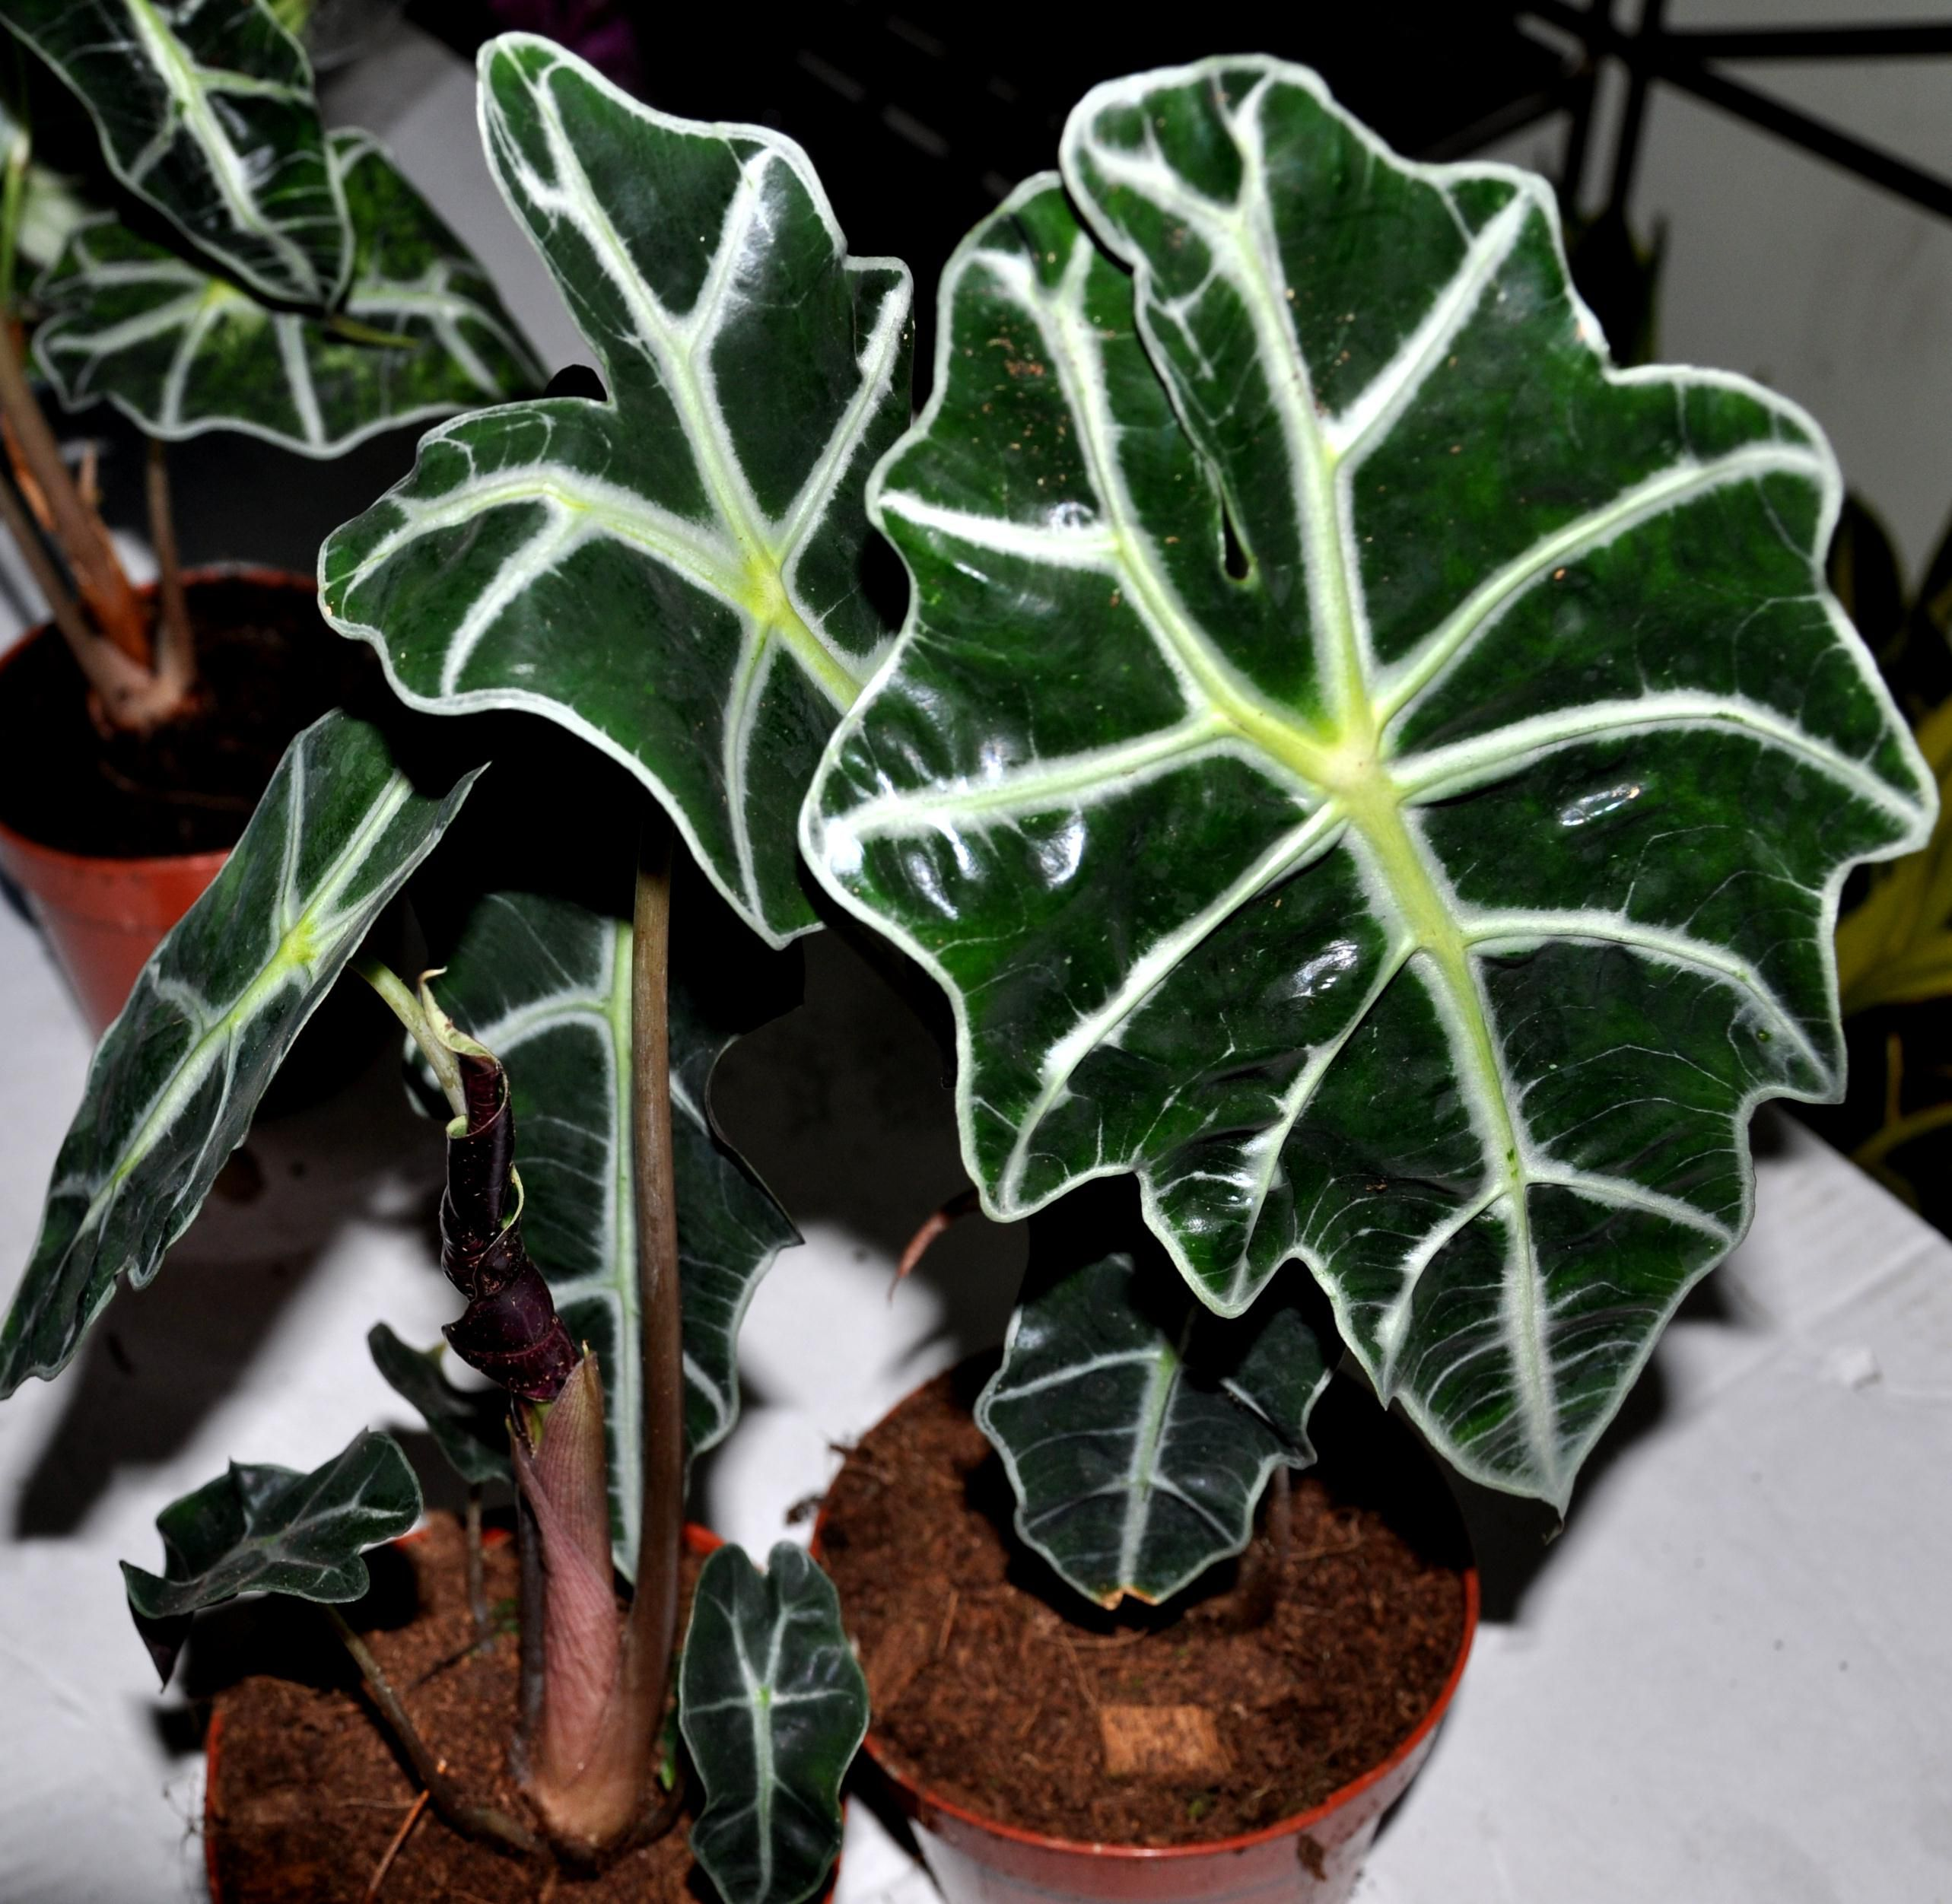 Tree Inside The House Interior Climate Controlled: How To Grow And Care For The Amazon Elephant's Ear